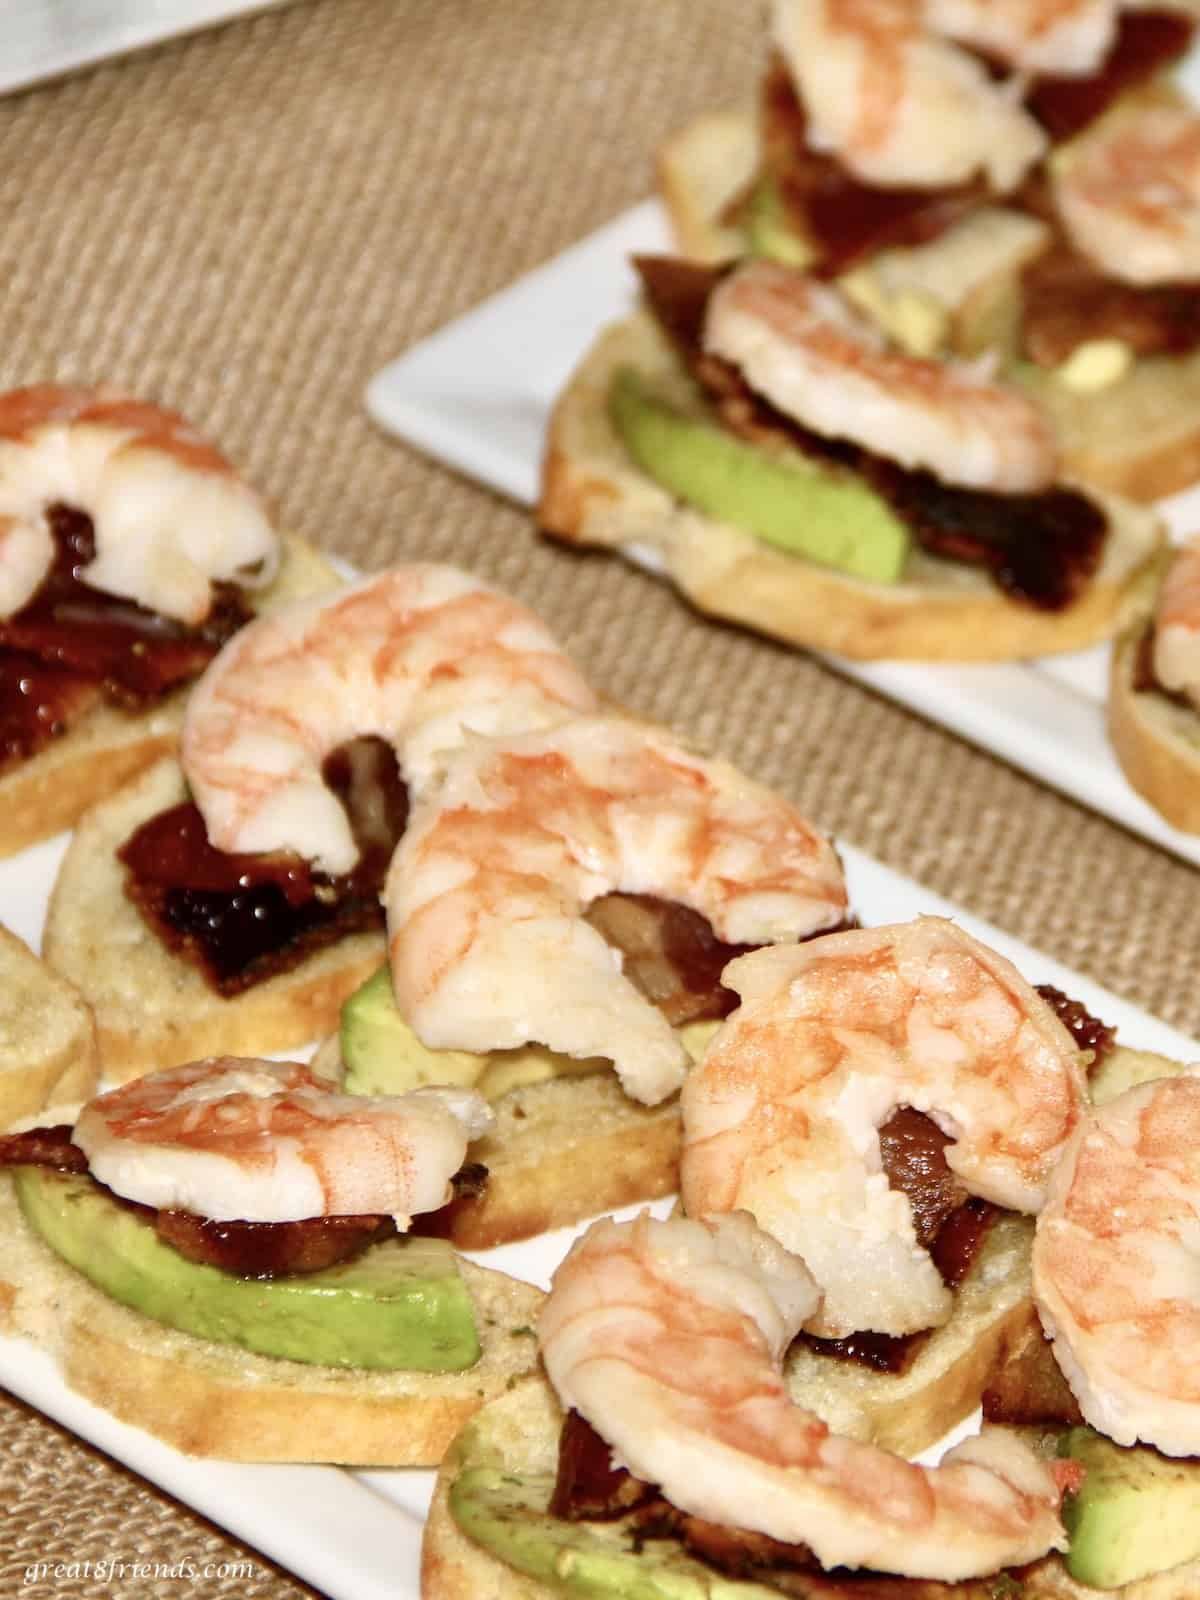 This hearty appetizer includes shrimp, candied bacon and avocado all on a toasted crostini.